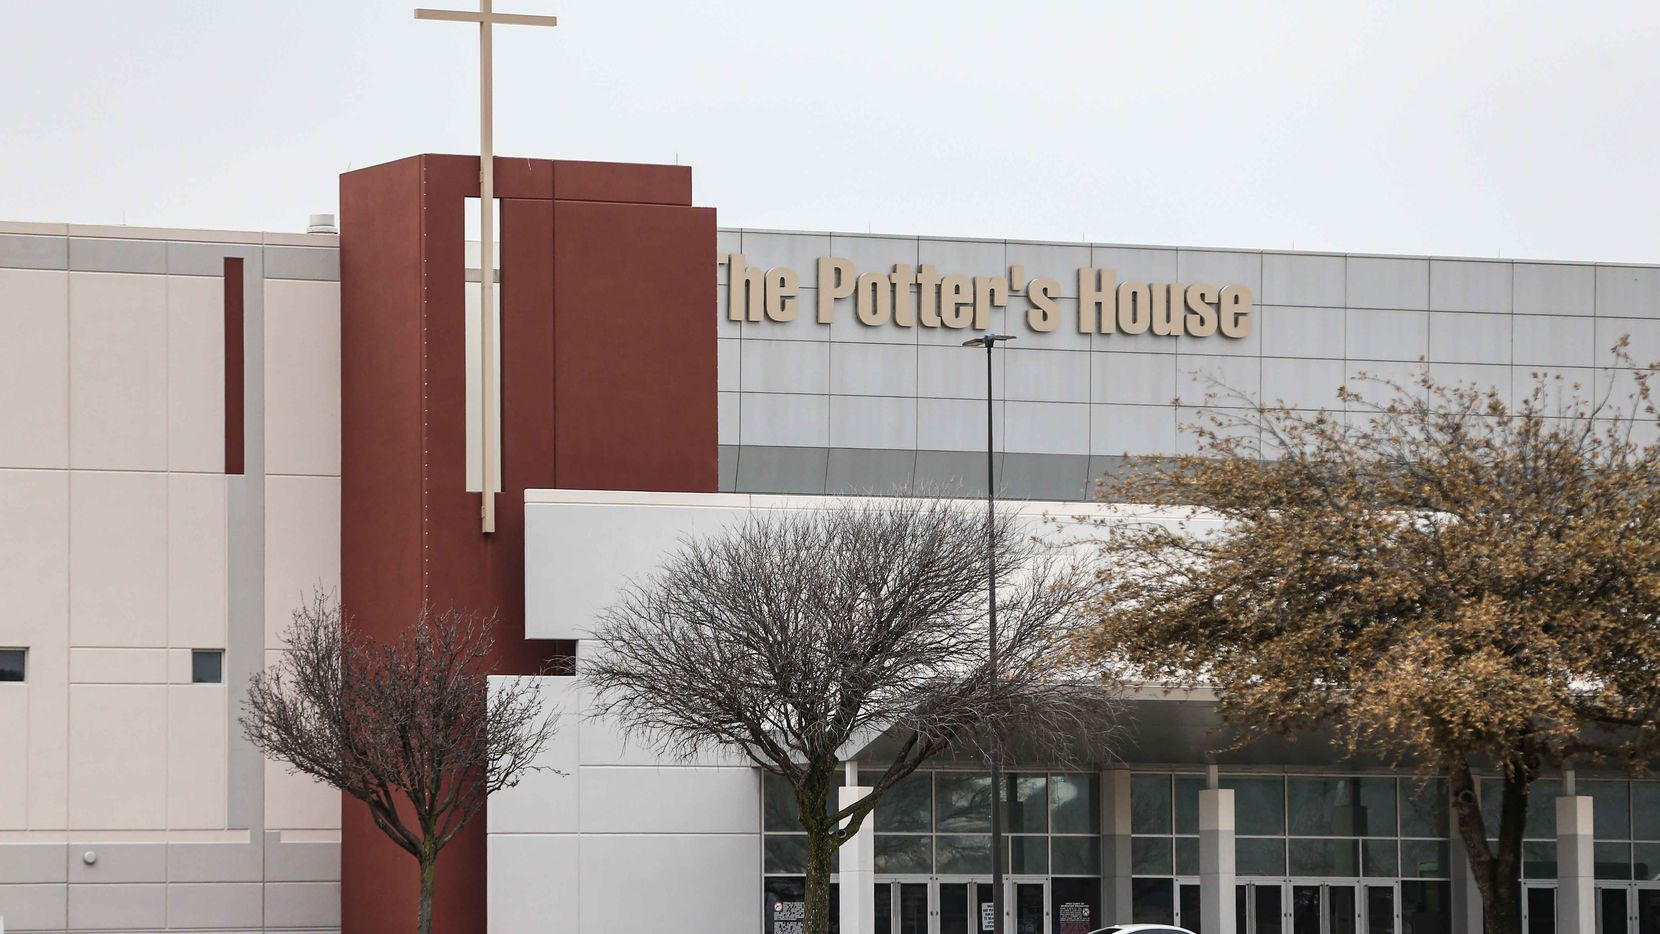 The Potter's House church across the street on Friday, February 26, 2021. The City of Dallas is planning to open a new COVID-19 vaccination site at The Potter's House church parking lot across the street in the southern part of the city sometime next week. Officials say they plan to vaccinate up to 1,000 people a day. (Lola Gomez/The Dallas Morning News)